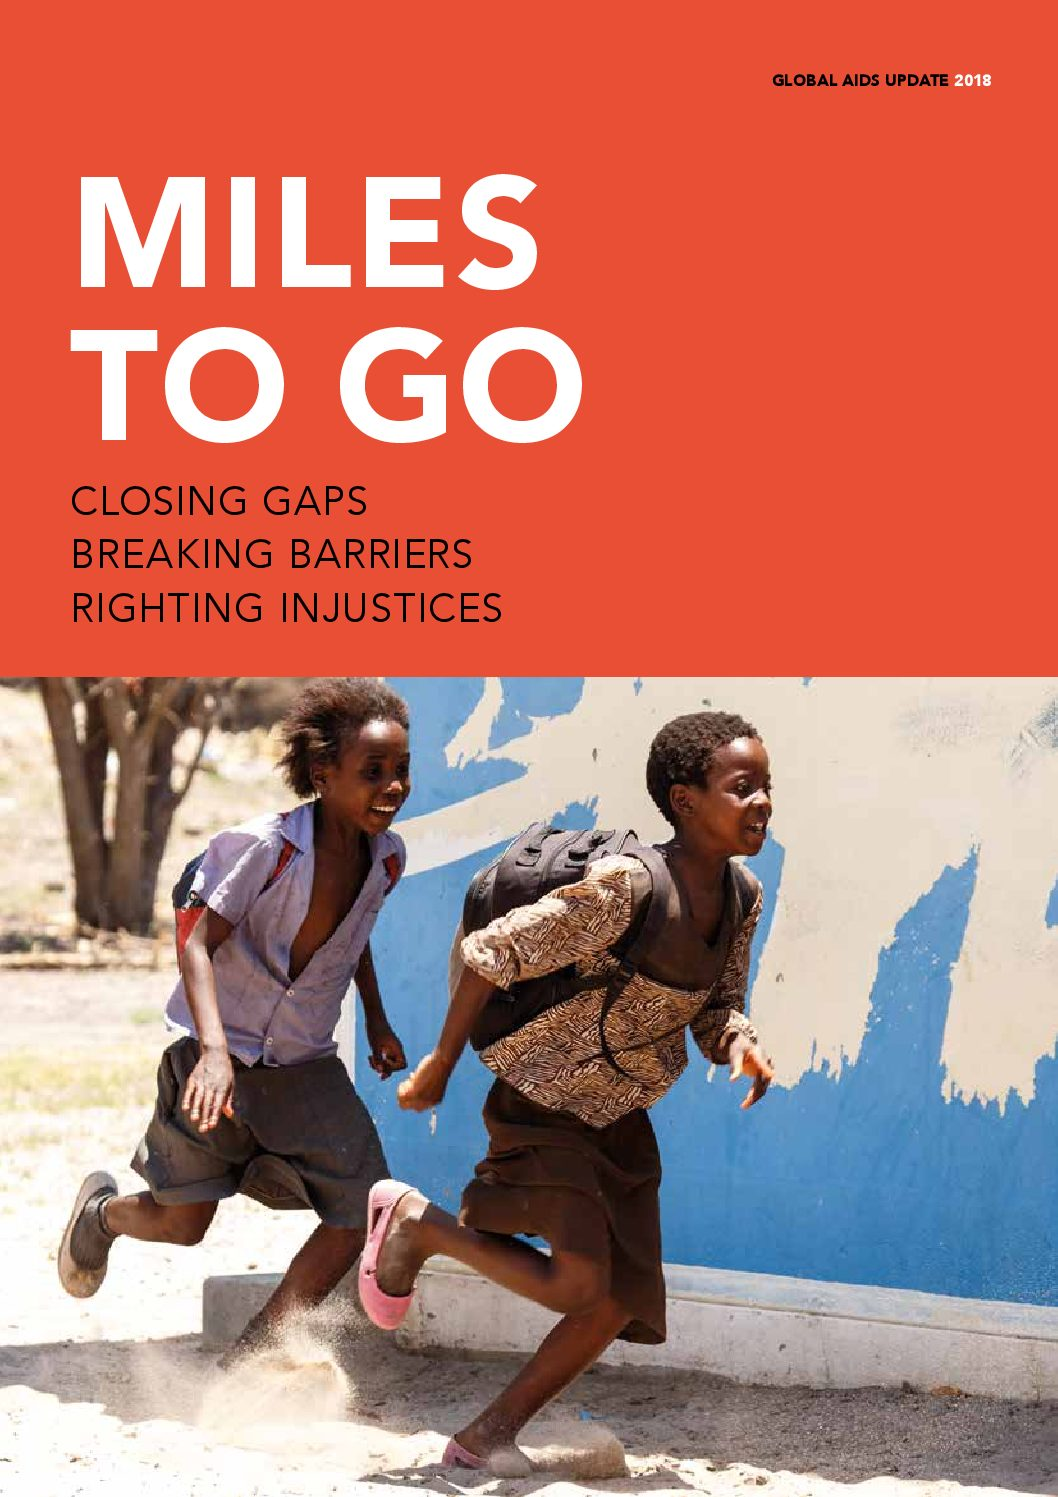 Miles to go. Сlosing gaps, breaking barriers, righting injustices